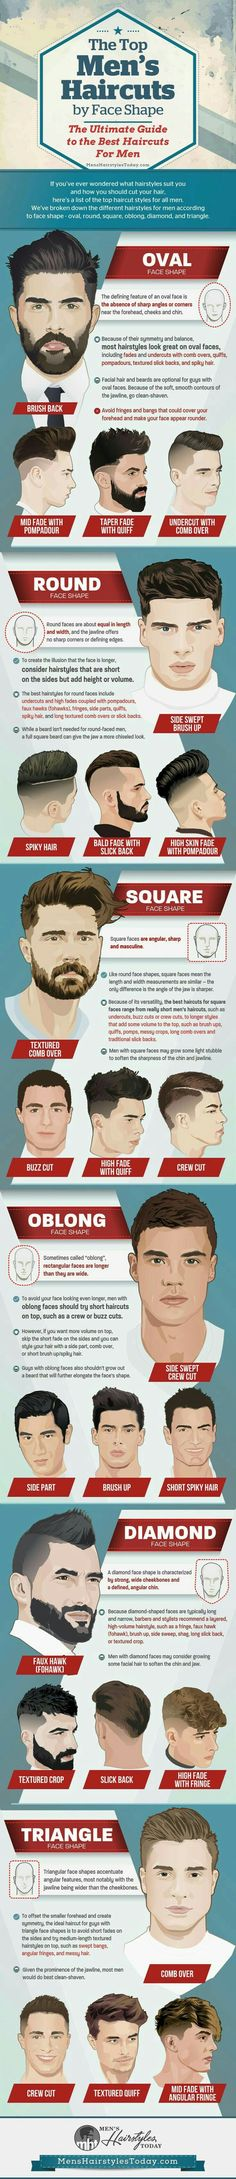 Men hair cut face shape